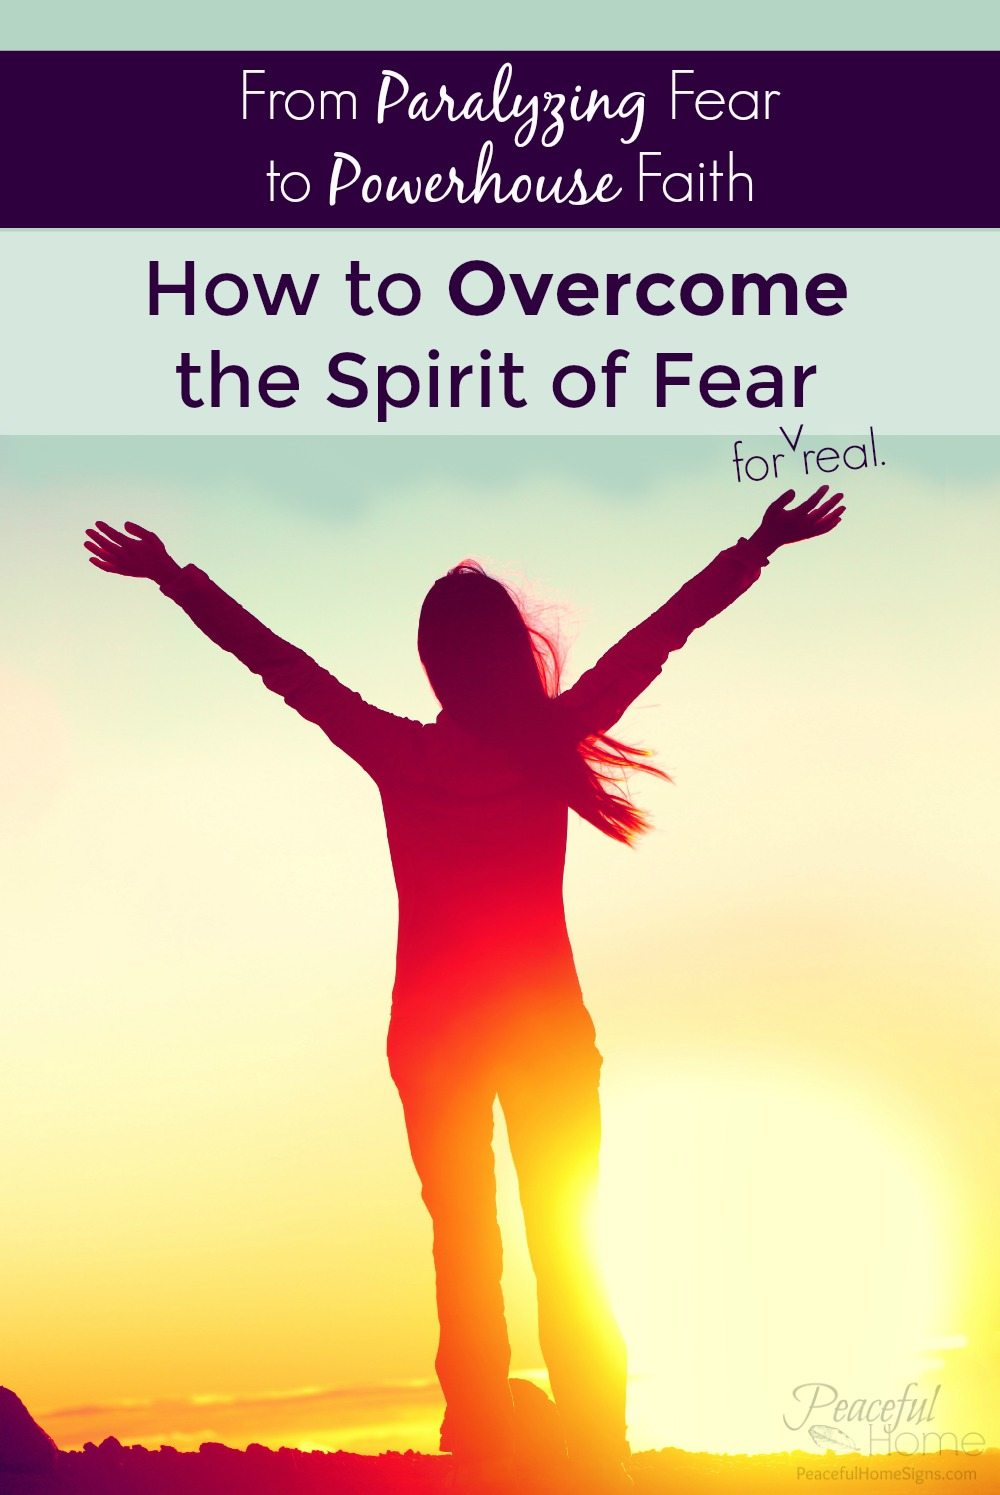 From Paralyzing Fear to Powerhouse Faith: How to Overcome